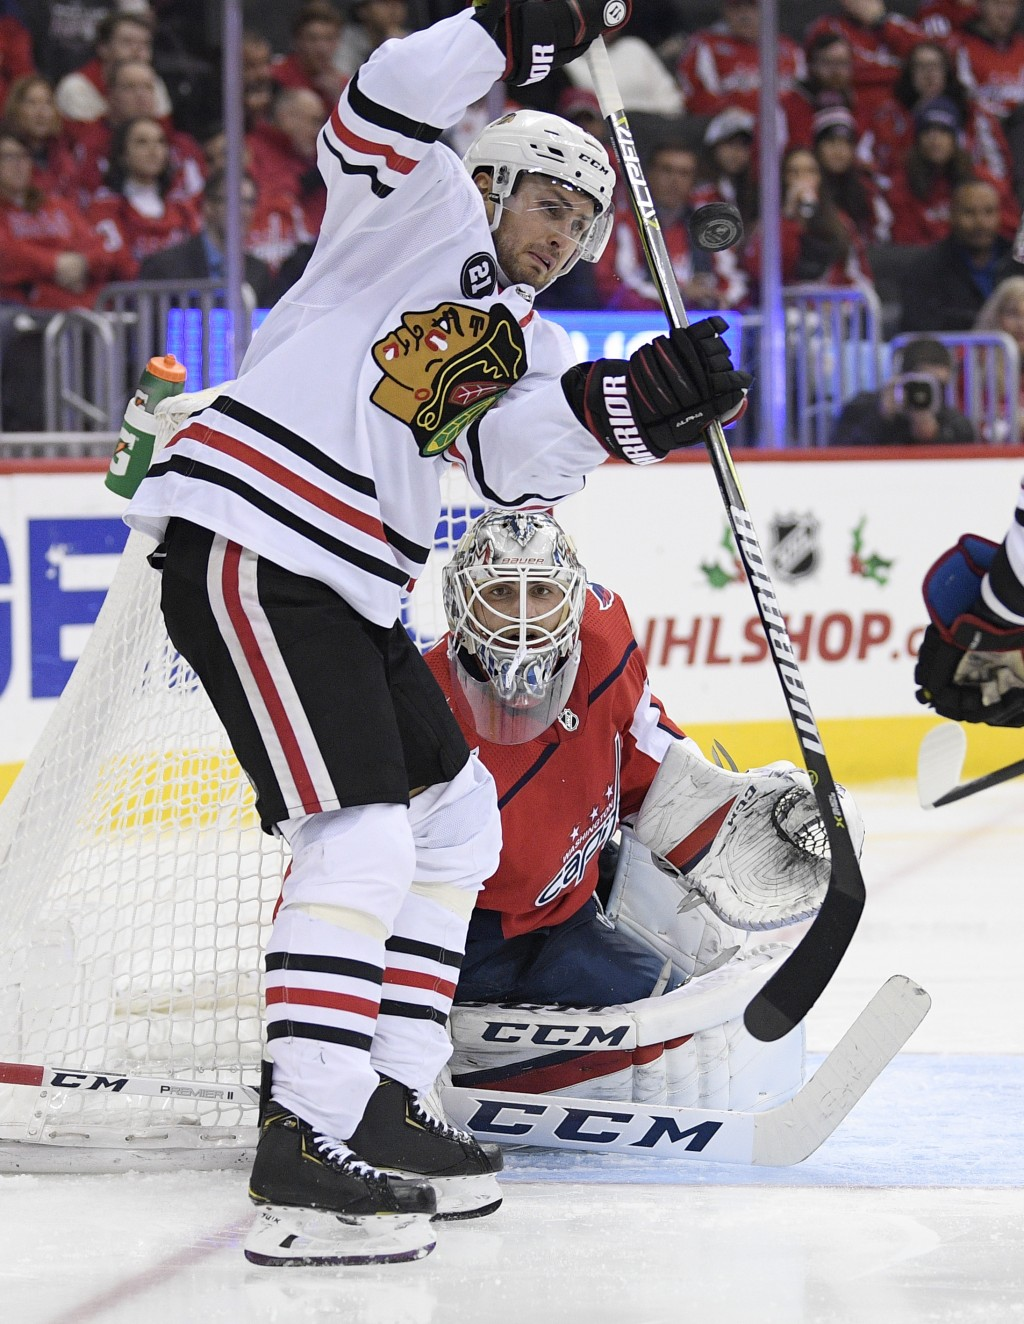 Chicago Blackhawks center Marcus Kruger, front, watches the puck in front of Washington Capitals goaltender Braden Holtby, back, during the second per...